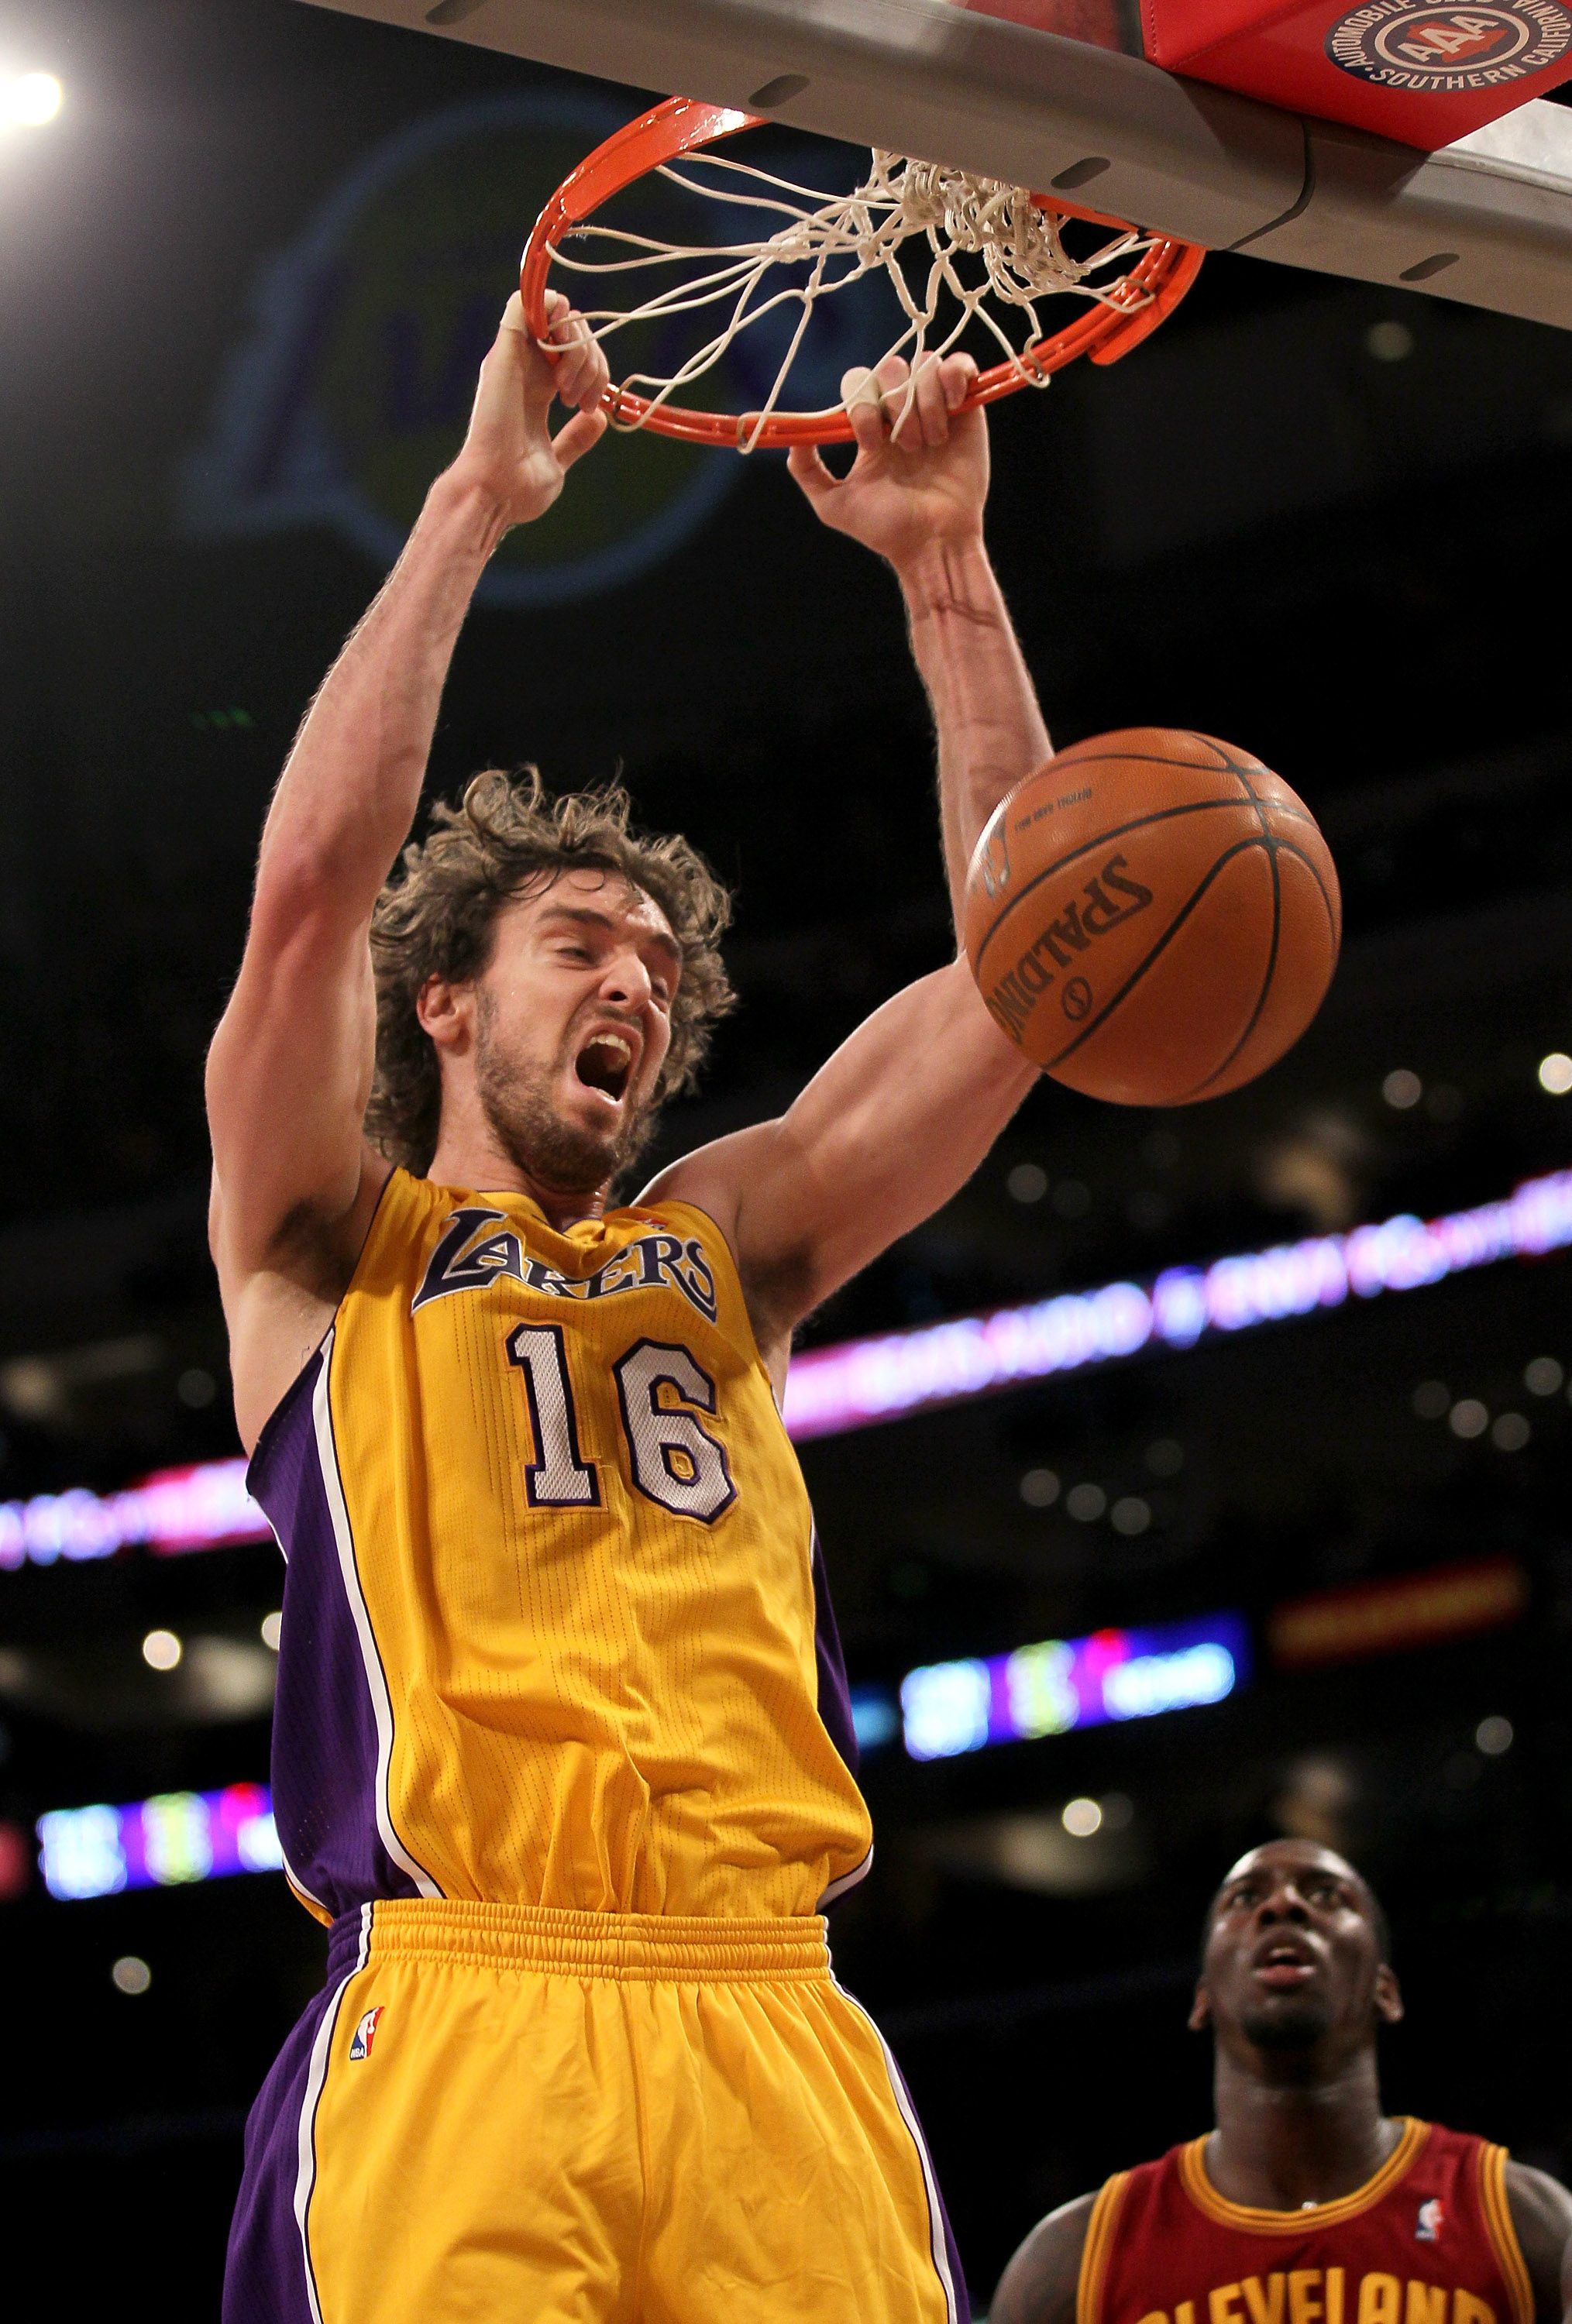 LOS ANGELES, CA - JANUARY 11:  Pau Gasol #16 of the Los Angeles Lakers dunks against the Cleveland Cavaliers at Staples Center on January 11, 2011 in Los Angeles, California.   NOTE TO USER: User expressly acknowledges and agrees that, by downloading and